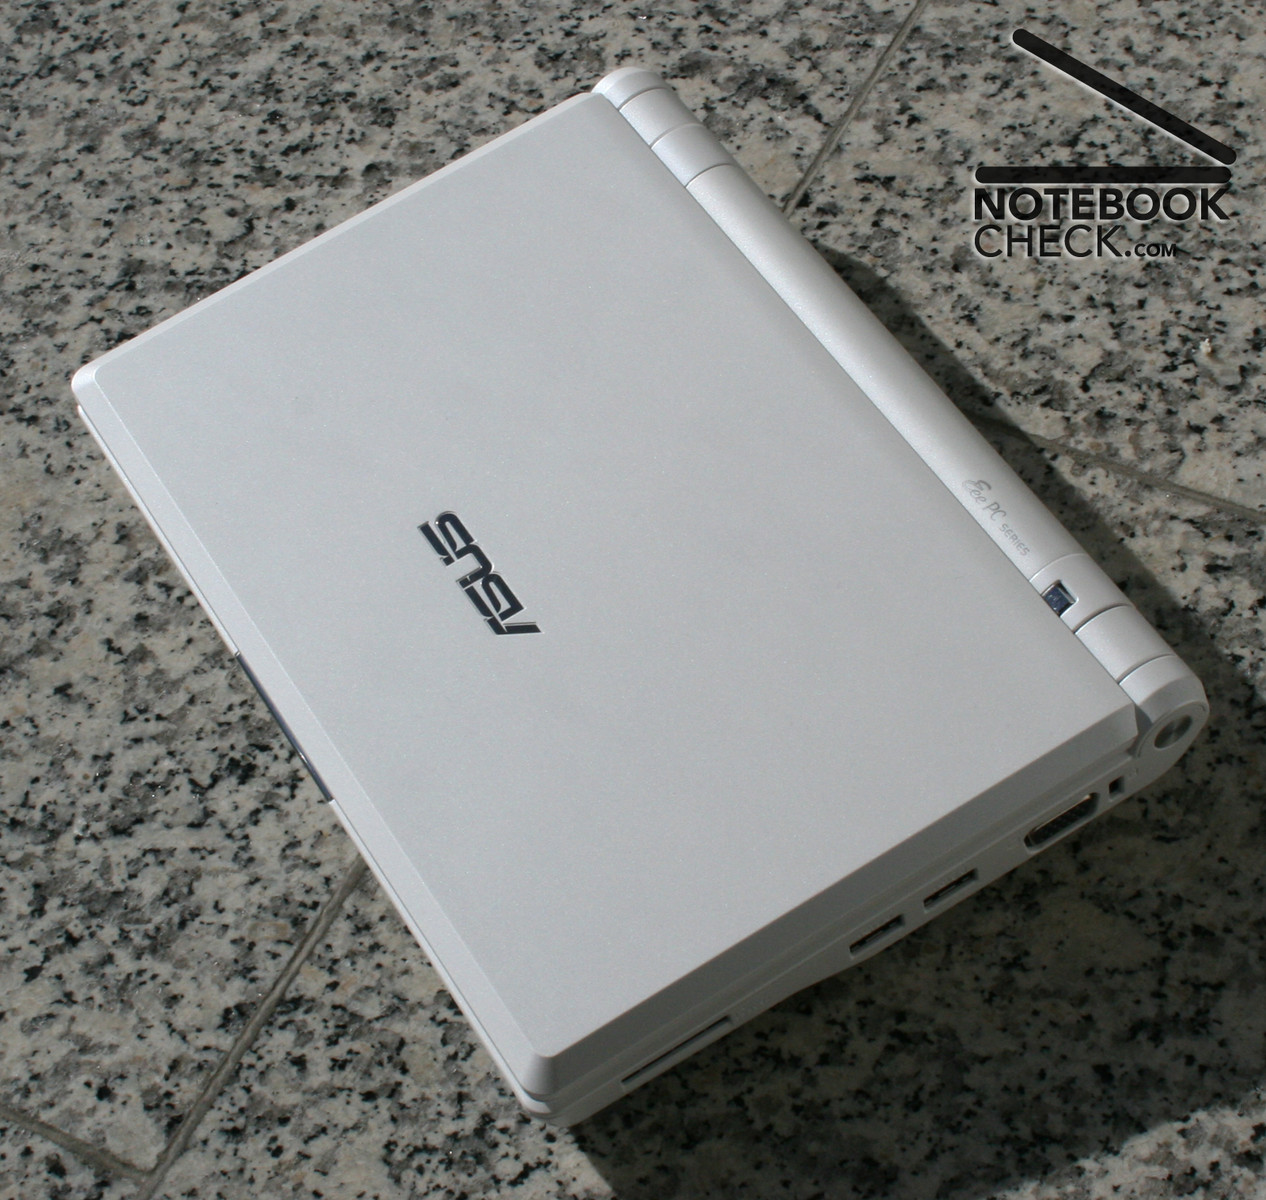 review asus eee pc family notebook reviews. Black Bedroom Furniture Sets. Home Design Ideas